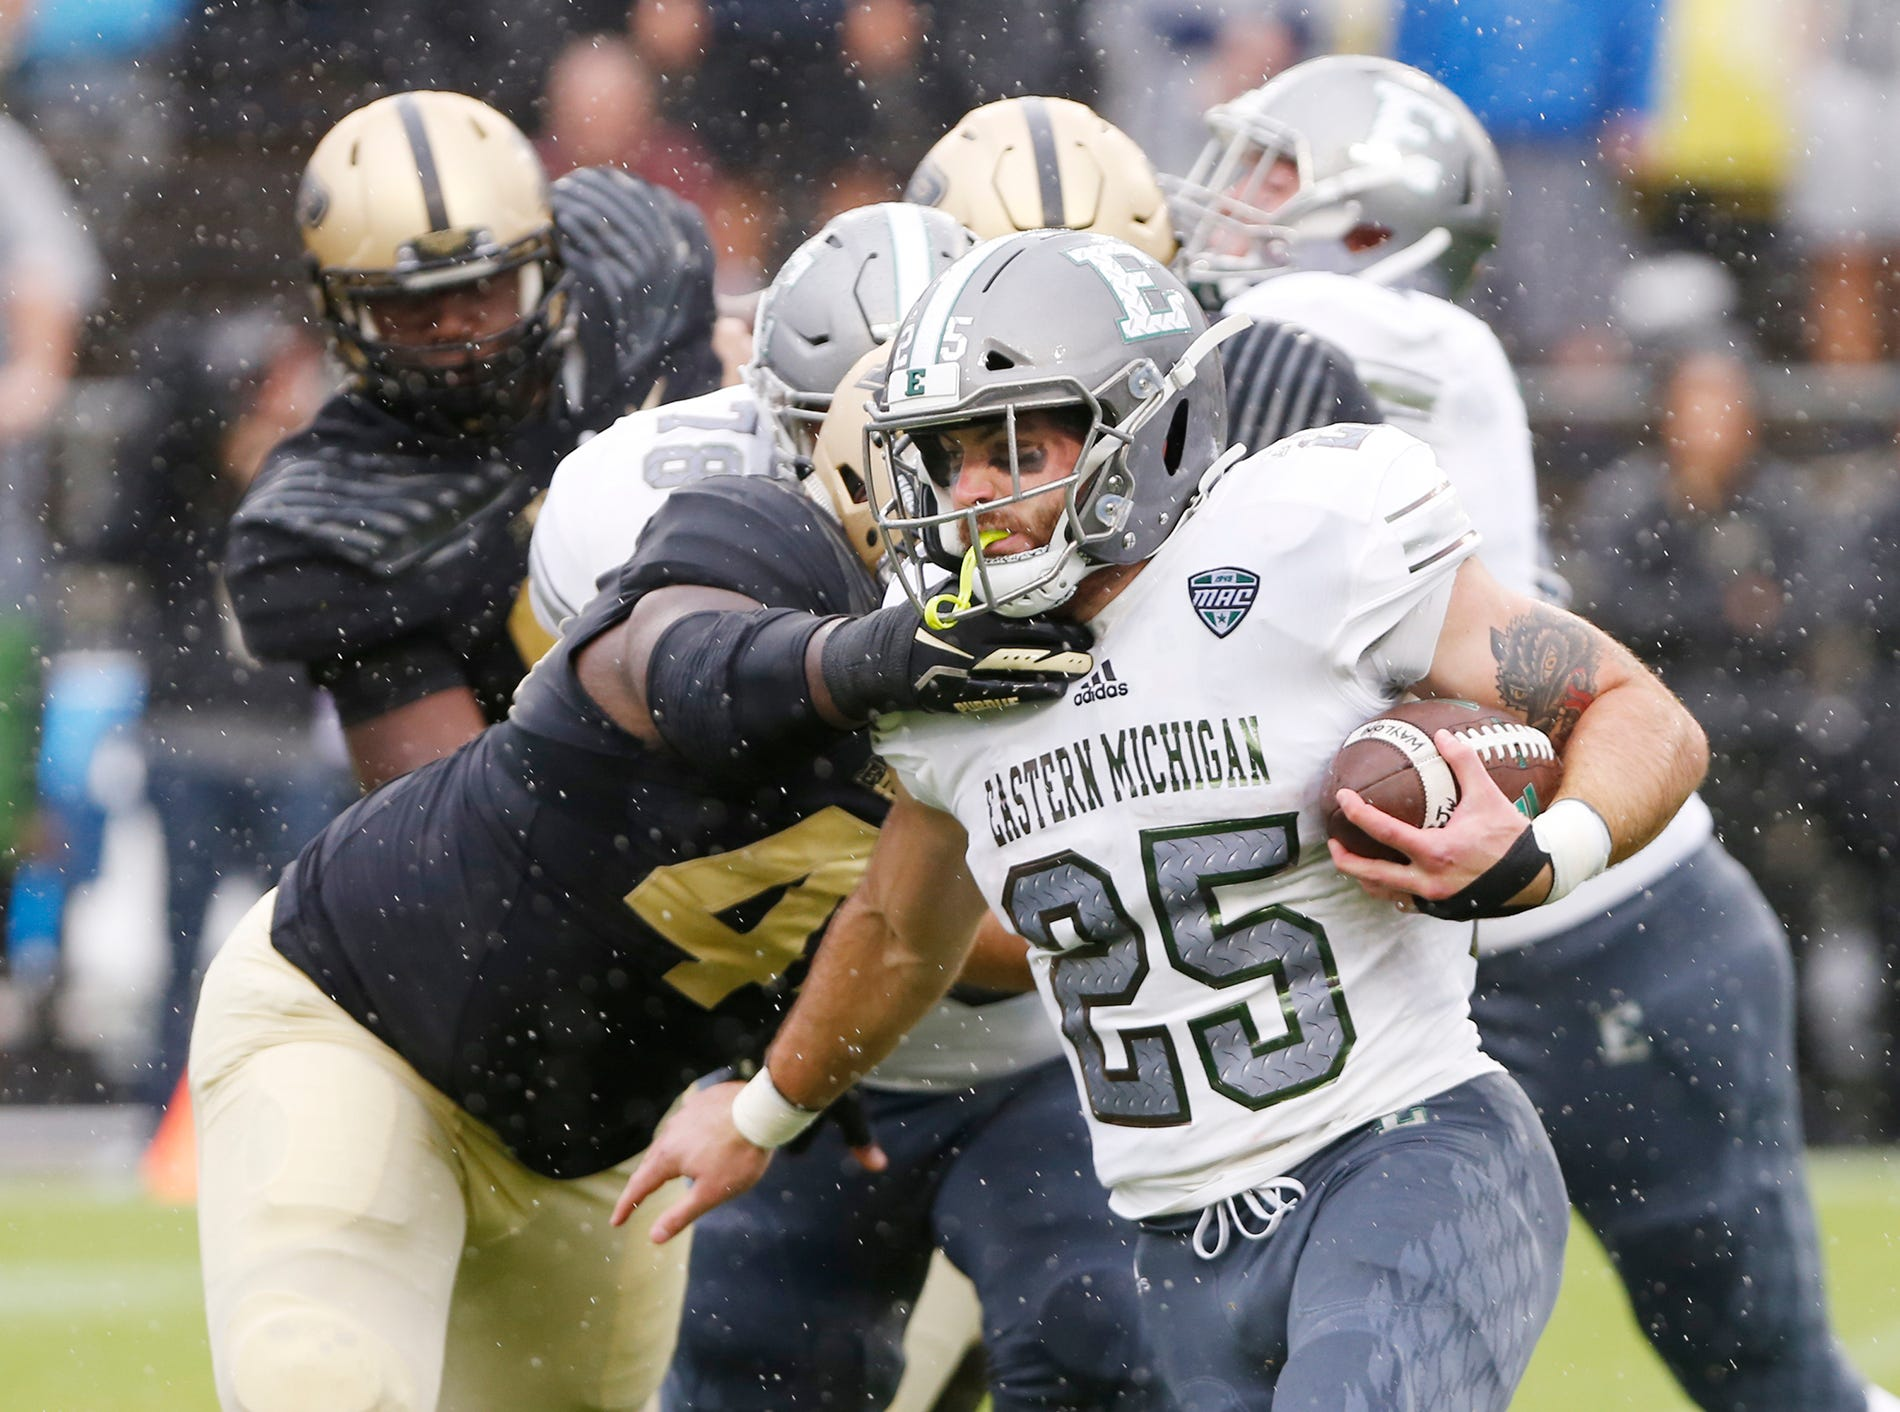 Ian Eriksen of Eastern Michigan with a first half carry against Purdue Saturday, September 8, 2018, in West Lafayette. Purdue fell to Eastern Michigan 20-19.